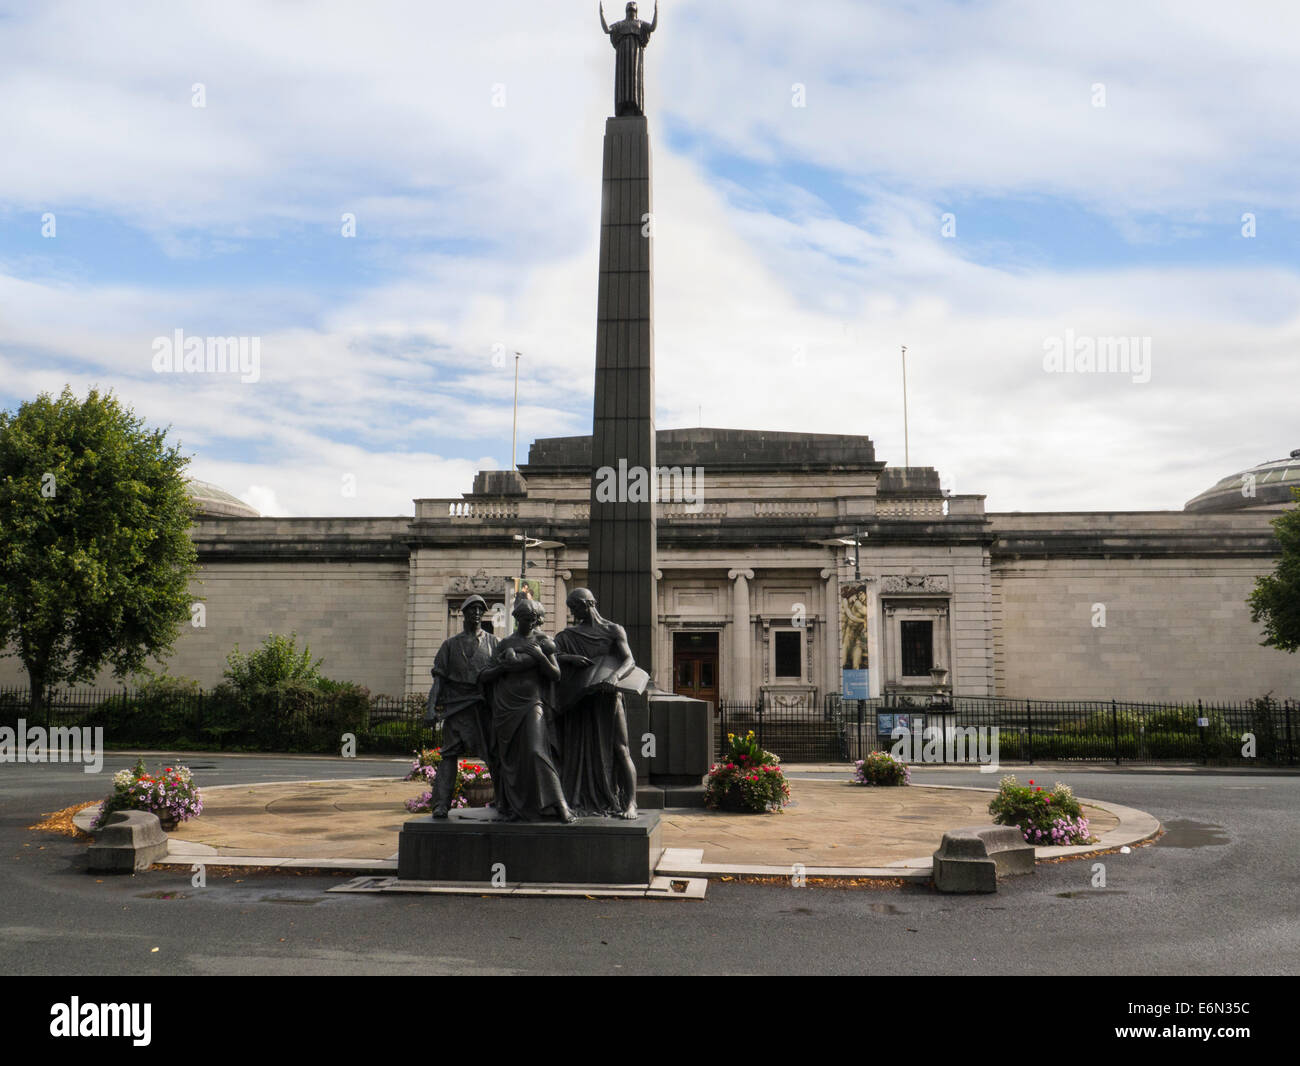 Leverhulme memorial commemorates life of William Hesketh Lever businessman created Port Sunlight factory and model - Stock Image